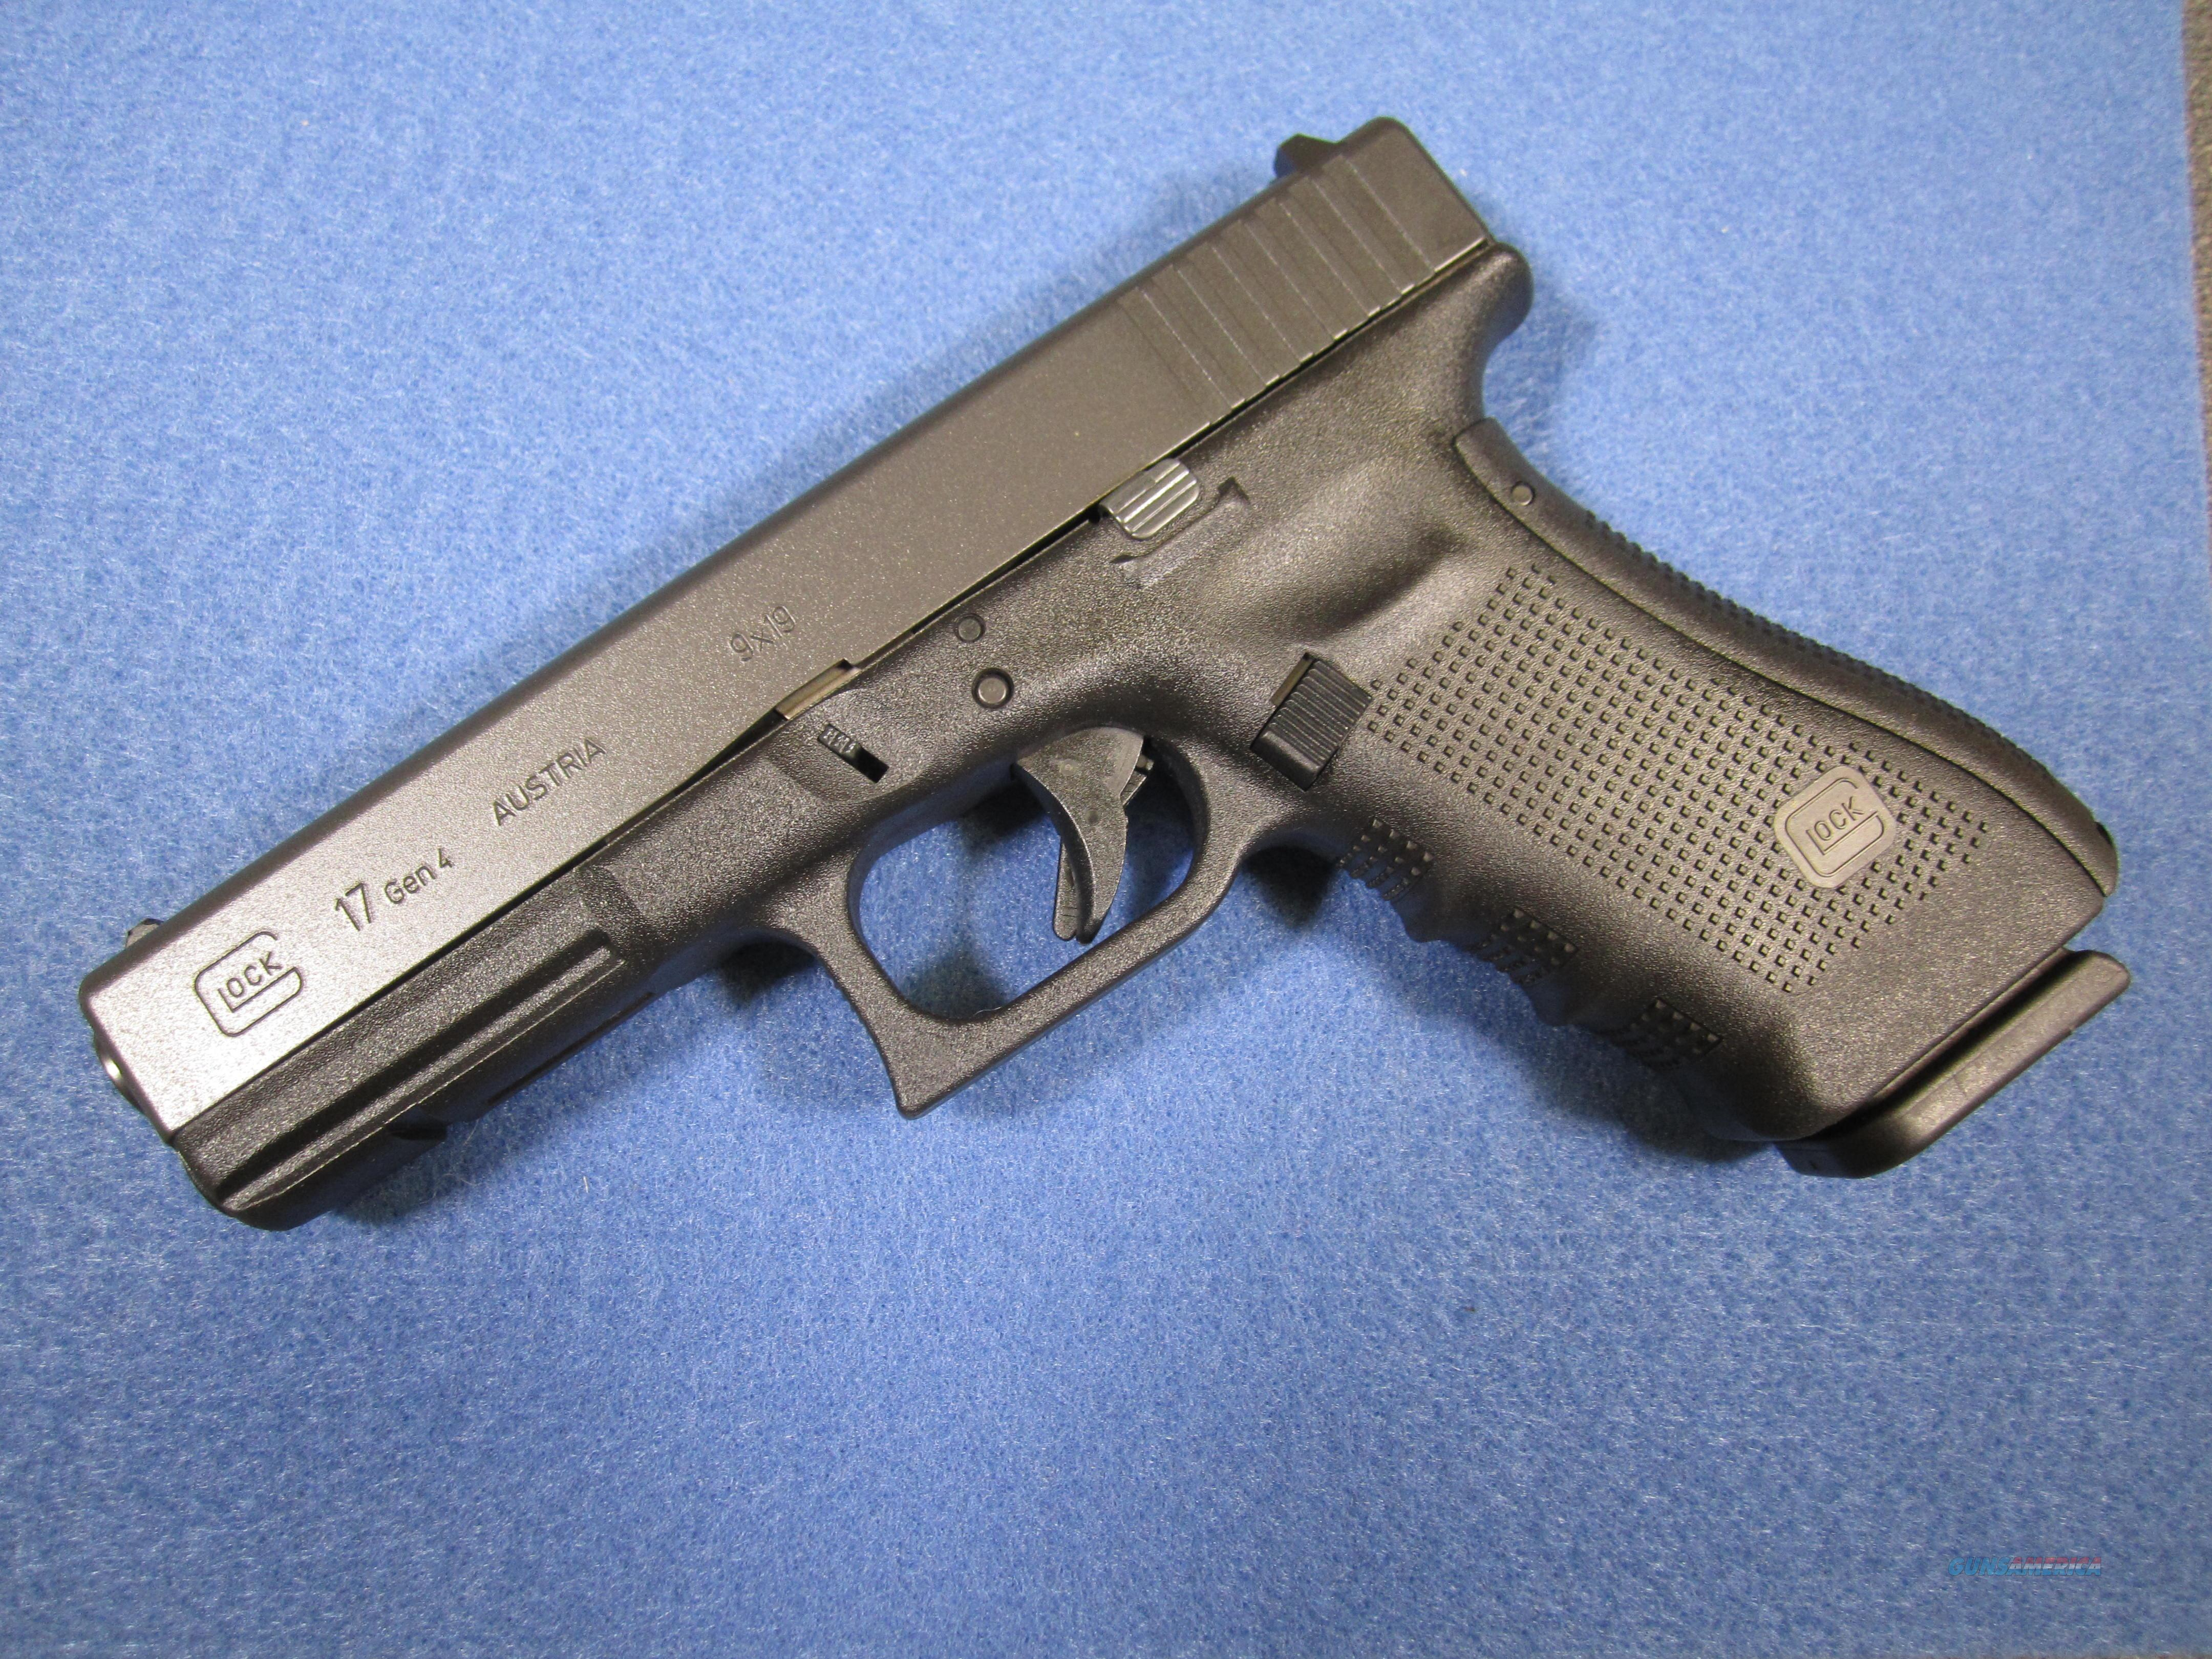 GLOCK 17 GEN4 with two 17 round mags and case!  Guns > Pistols > Glock Pistols > 17